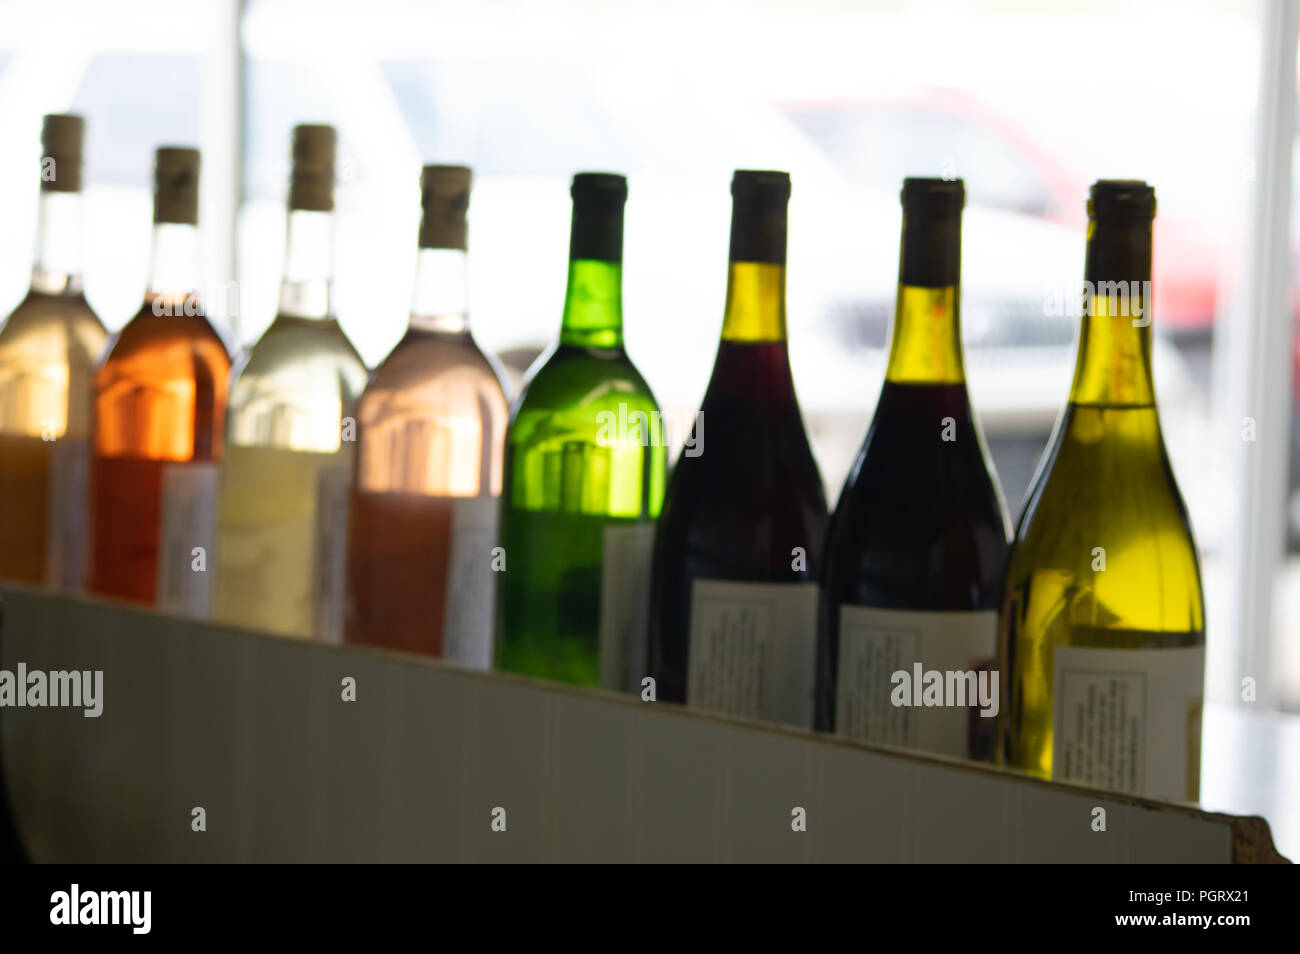 A row of colorful wine bottles back lit by natural white against a light background Stock Photo